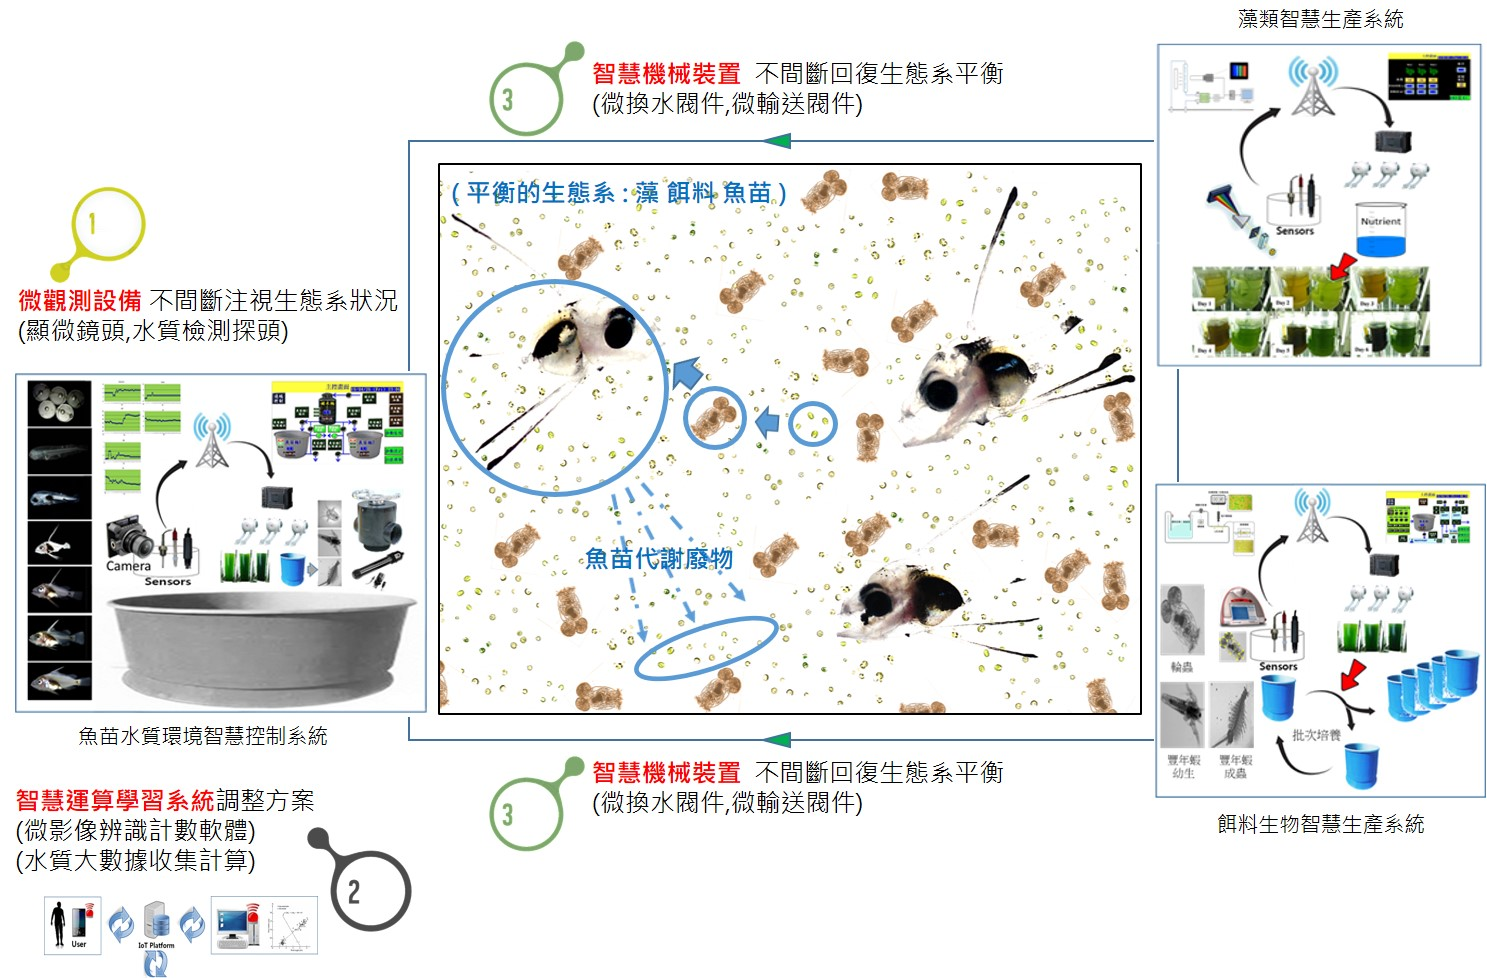 Fish breeding intelligent production system